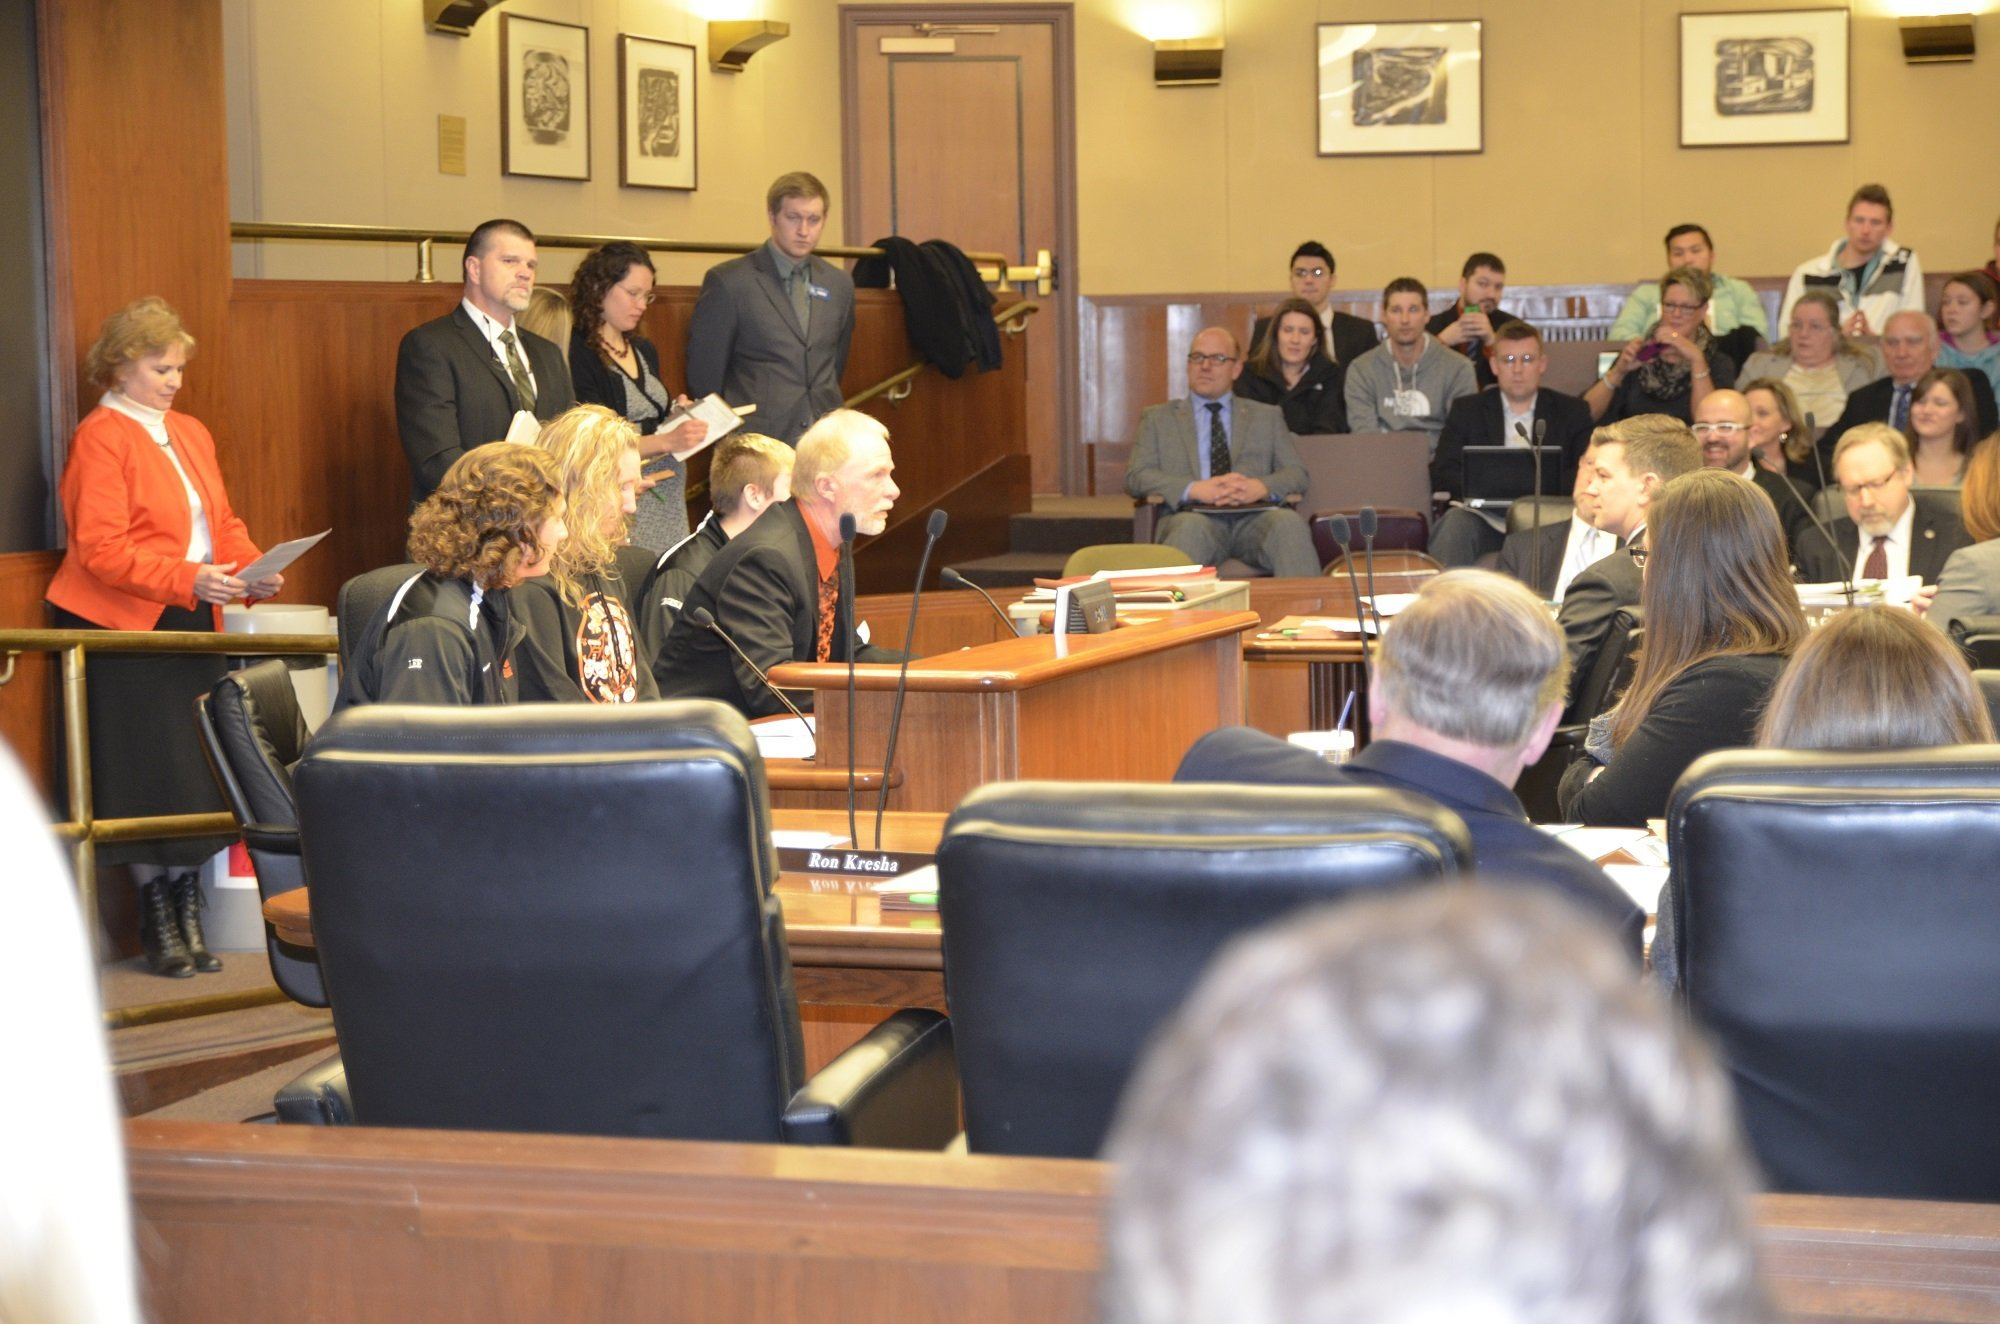 Ogilvie School Board Chair Jeff DeYoung (sitting front) and Ogilvie Superintendent Kathy Belsheim (standing, rear) and other school officials urged committee members to let them maintain their four-day school week schedules.